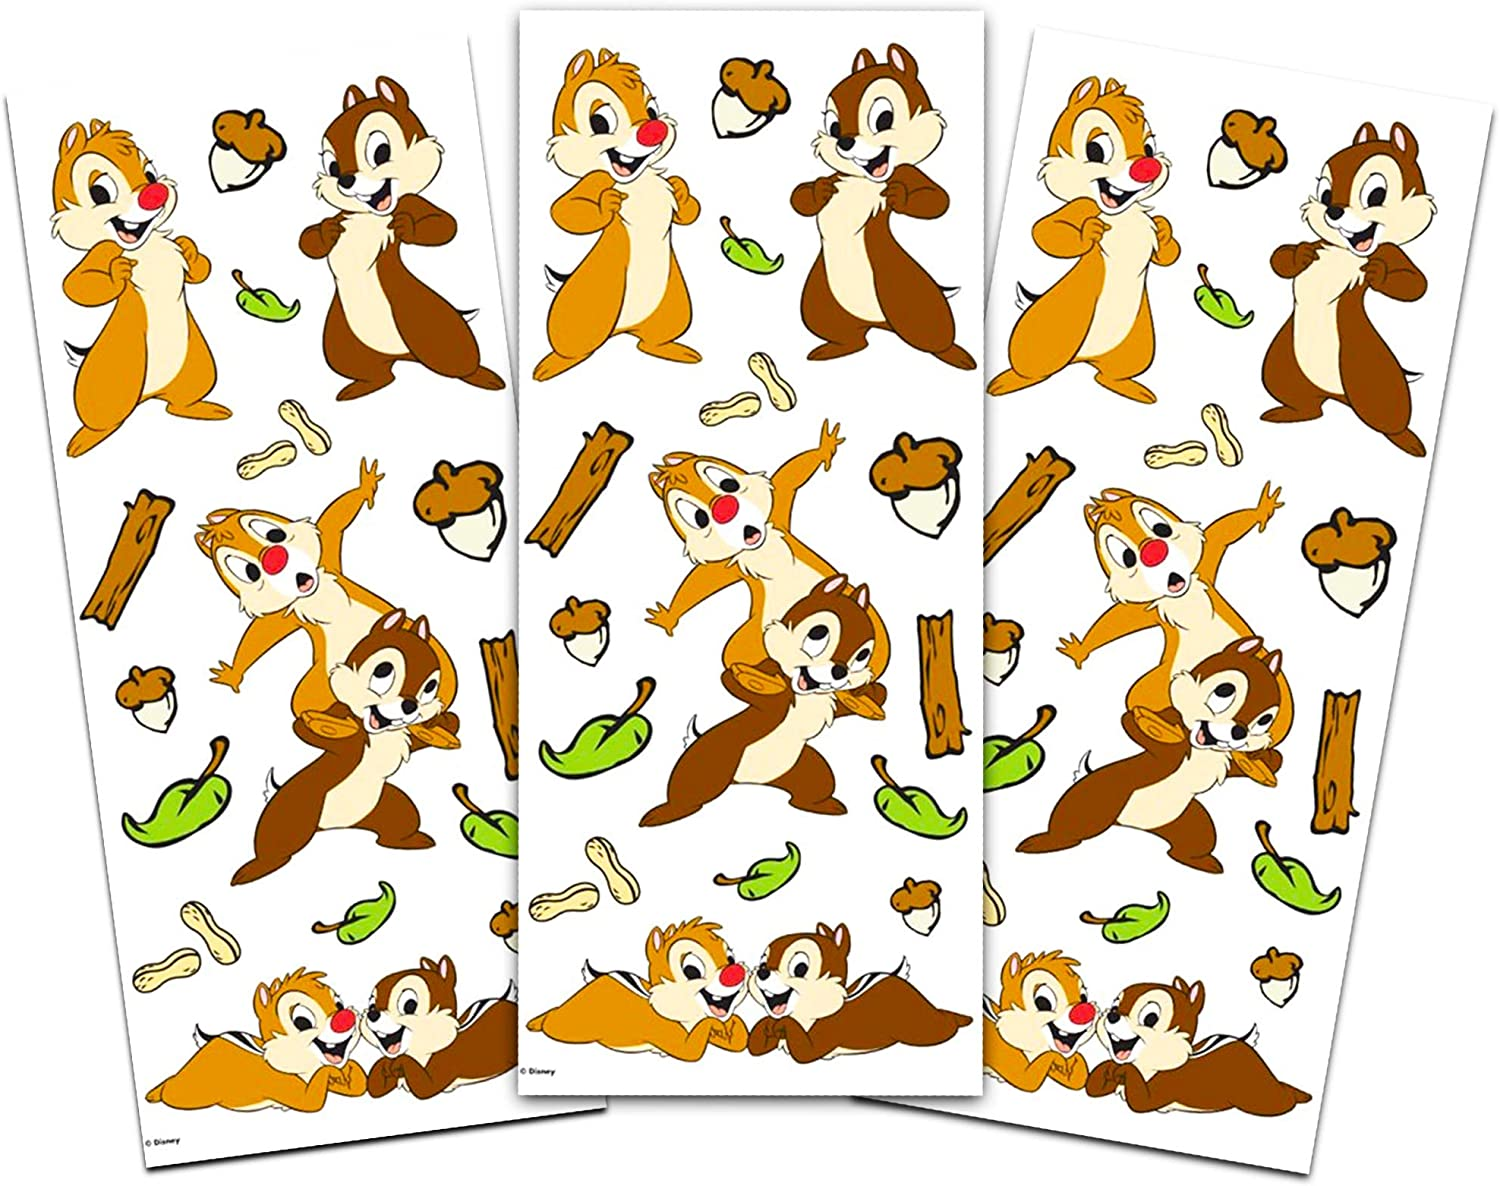 Disney Characters Stickers 6 Pack ~ 3 Chip and Dale Sticker Sheets and 3 Sheets of Mickey Mouse Stickers Disney Stickers